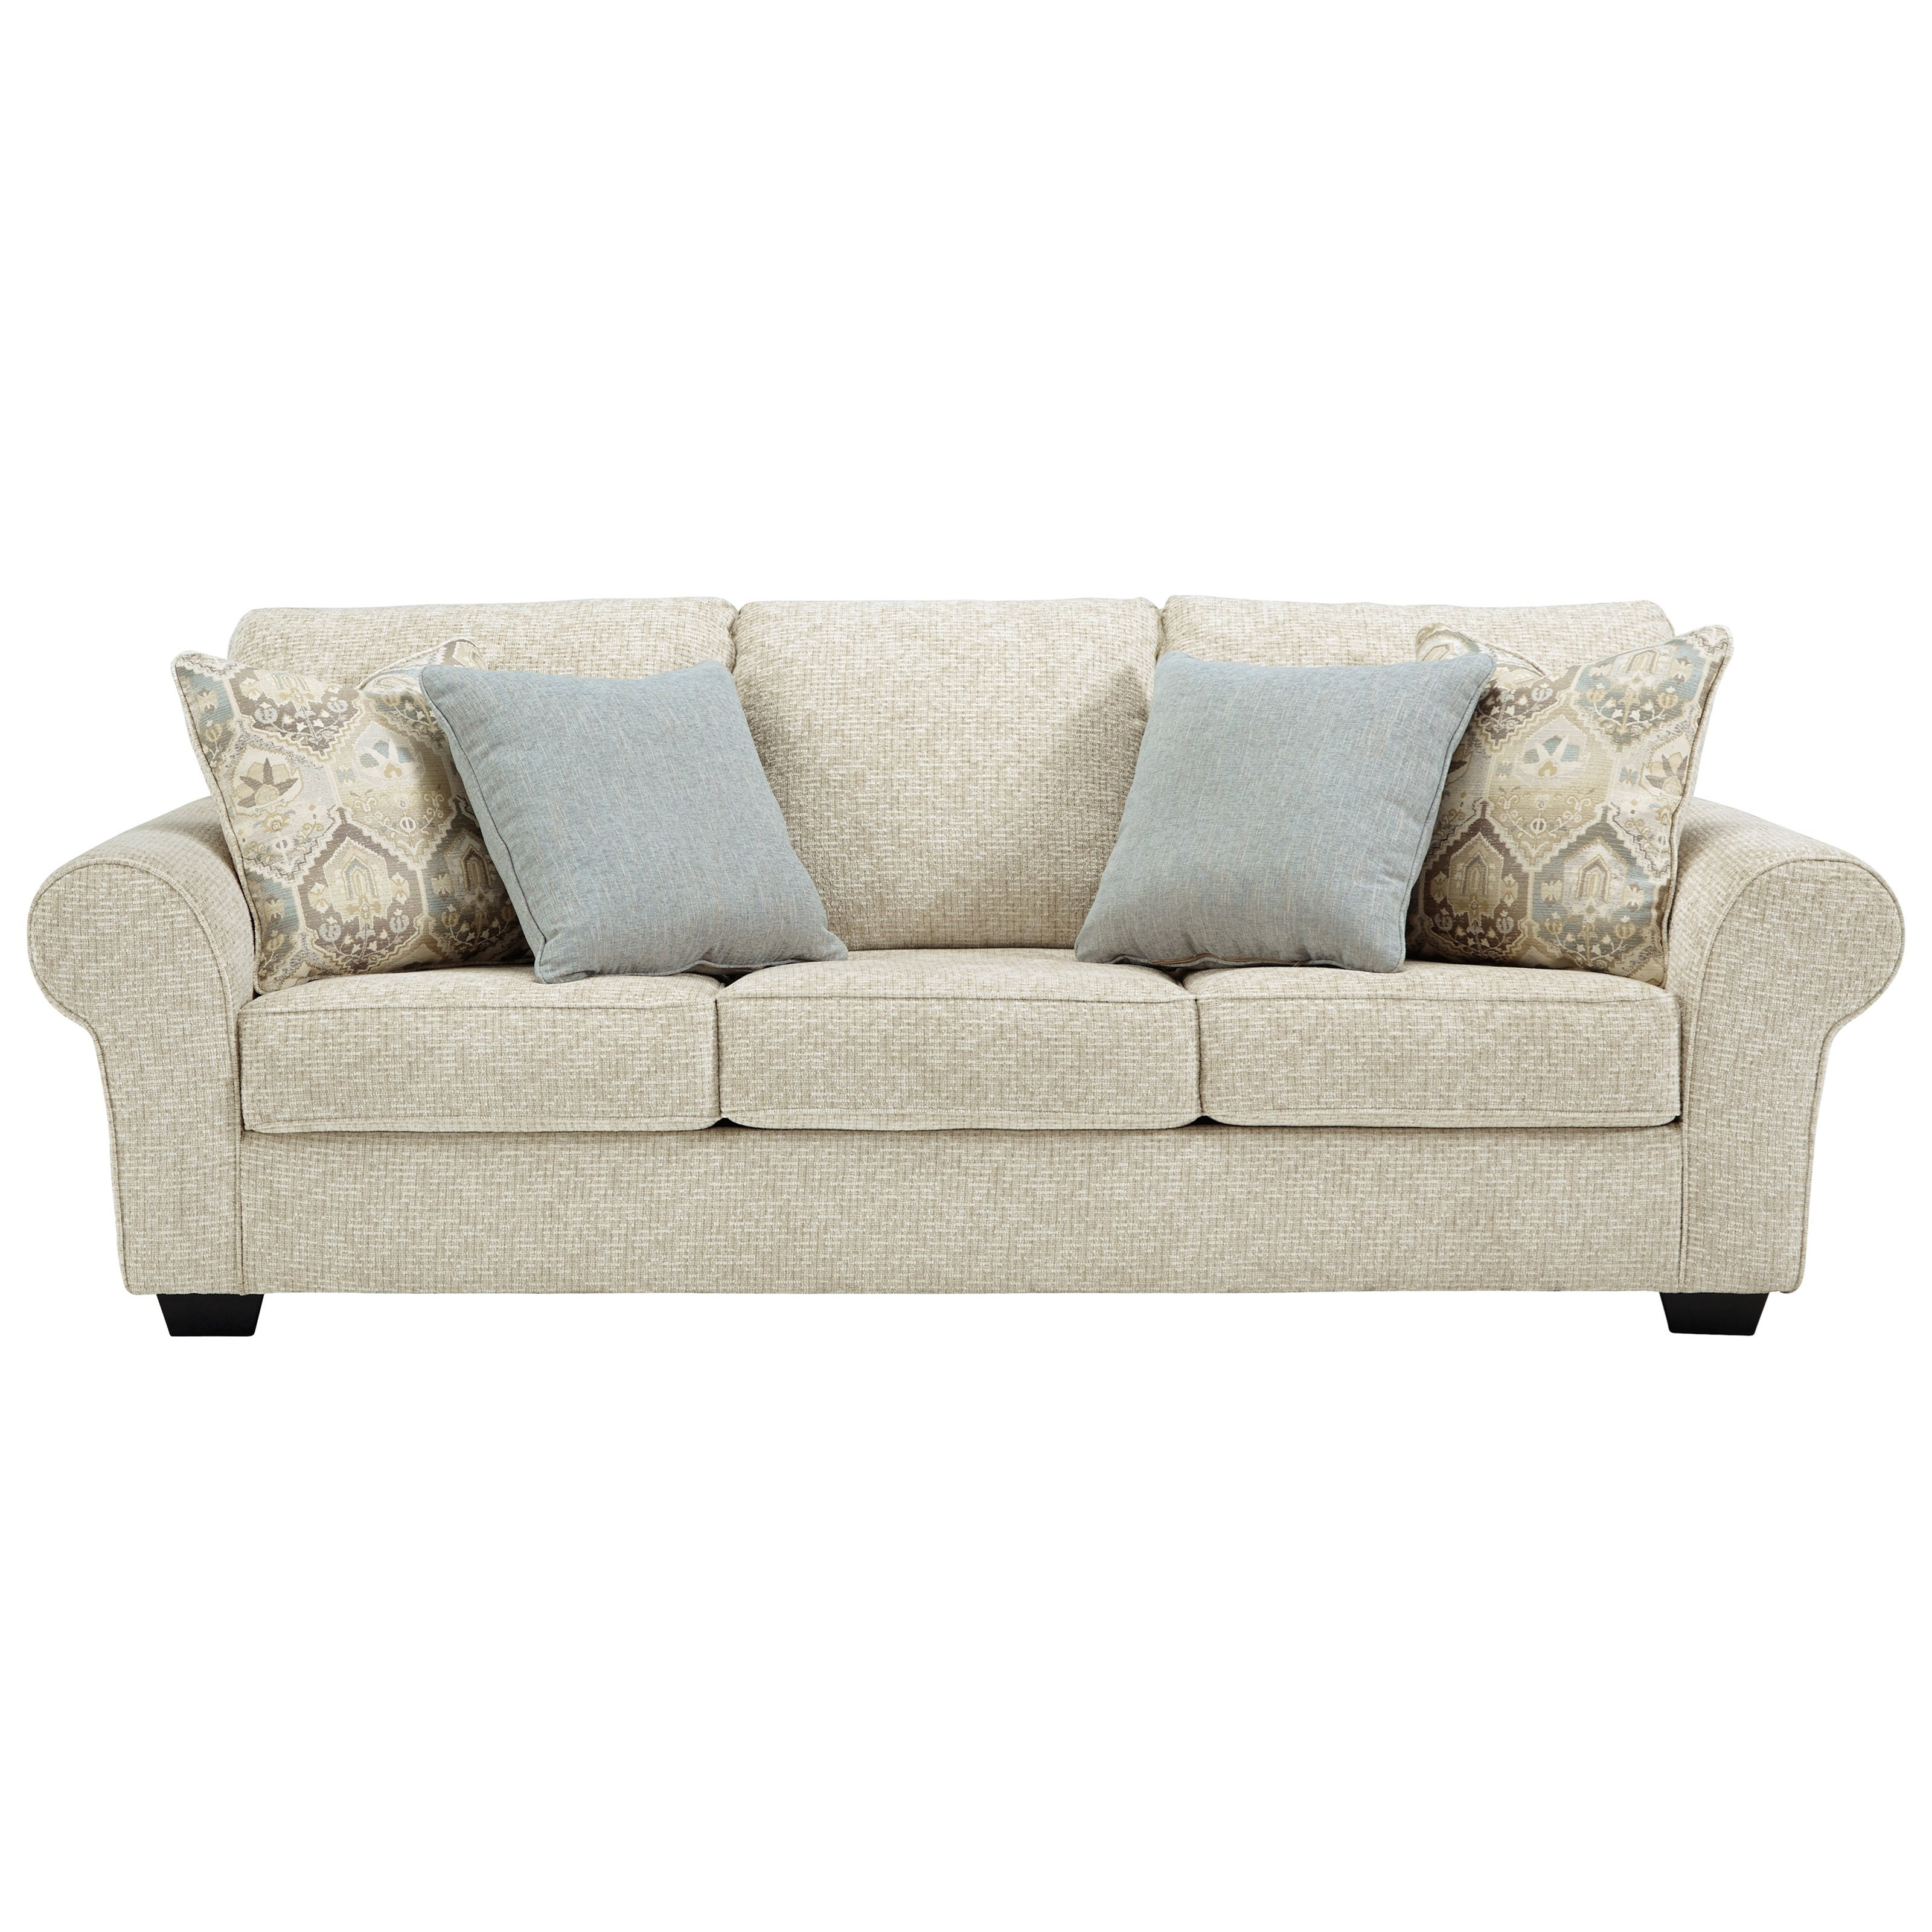 Haisley Sofa by Benchcraft at Walker's Furniture